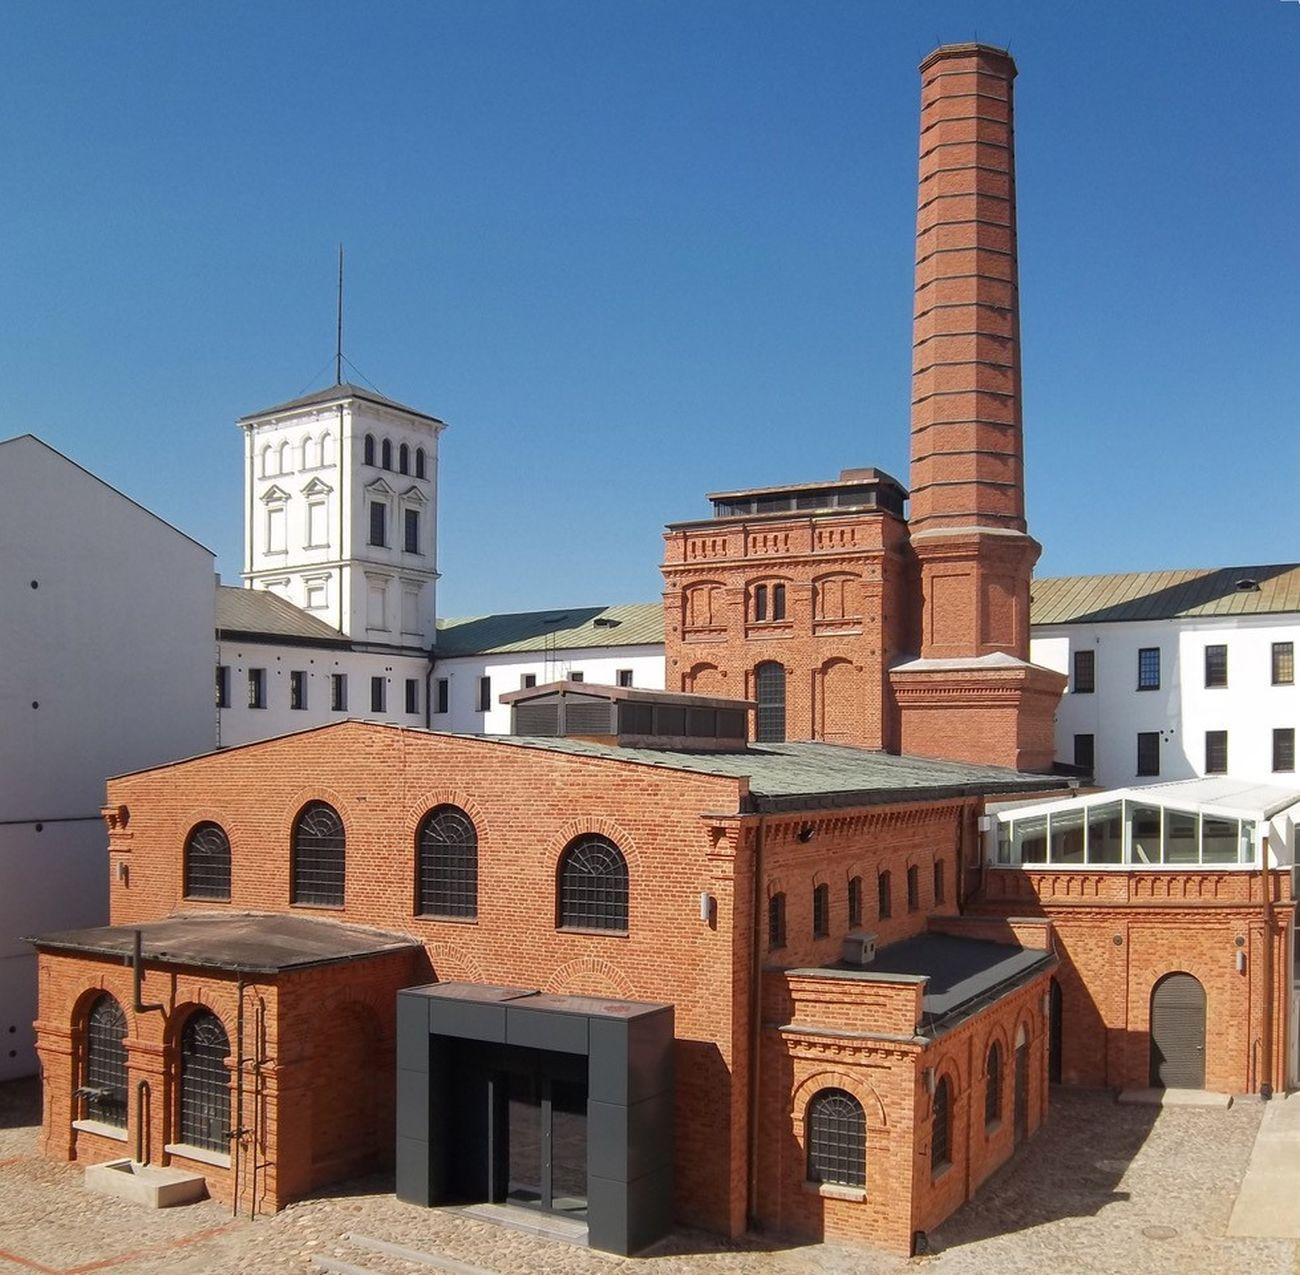 Central Museum of Textiles, Lodz © Central Museum of Textiles